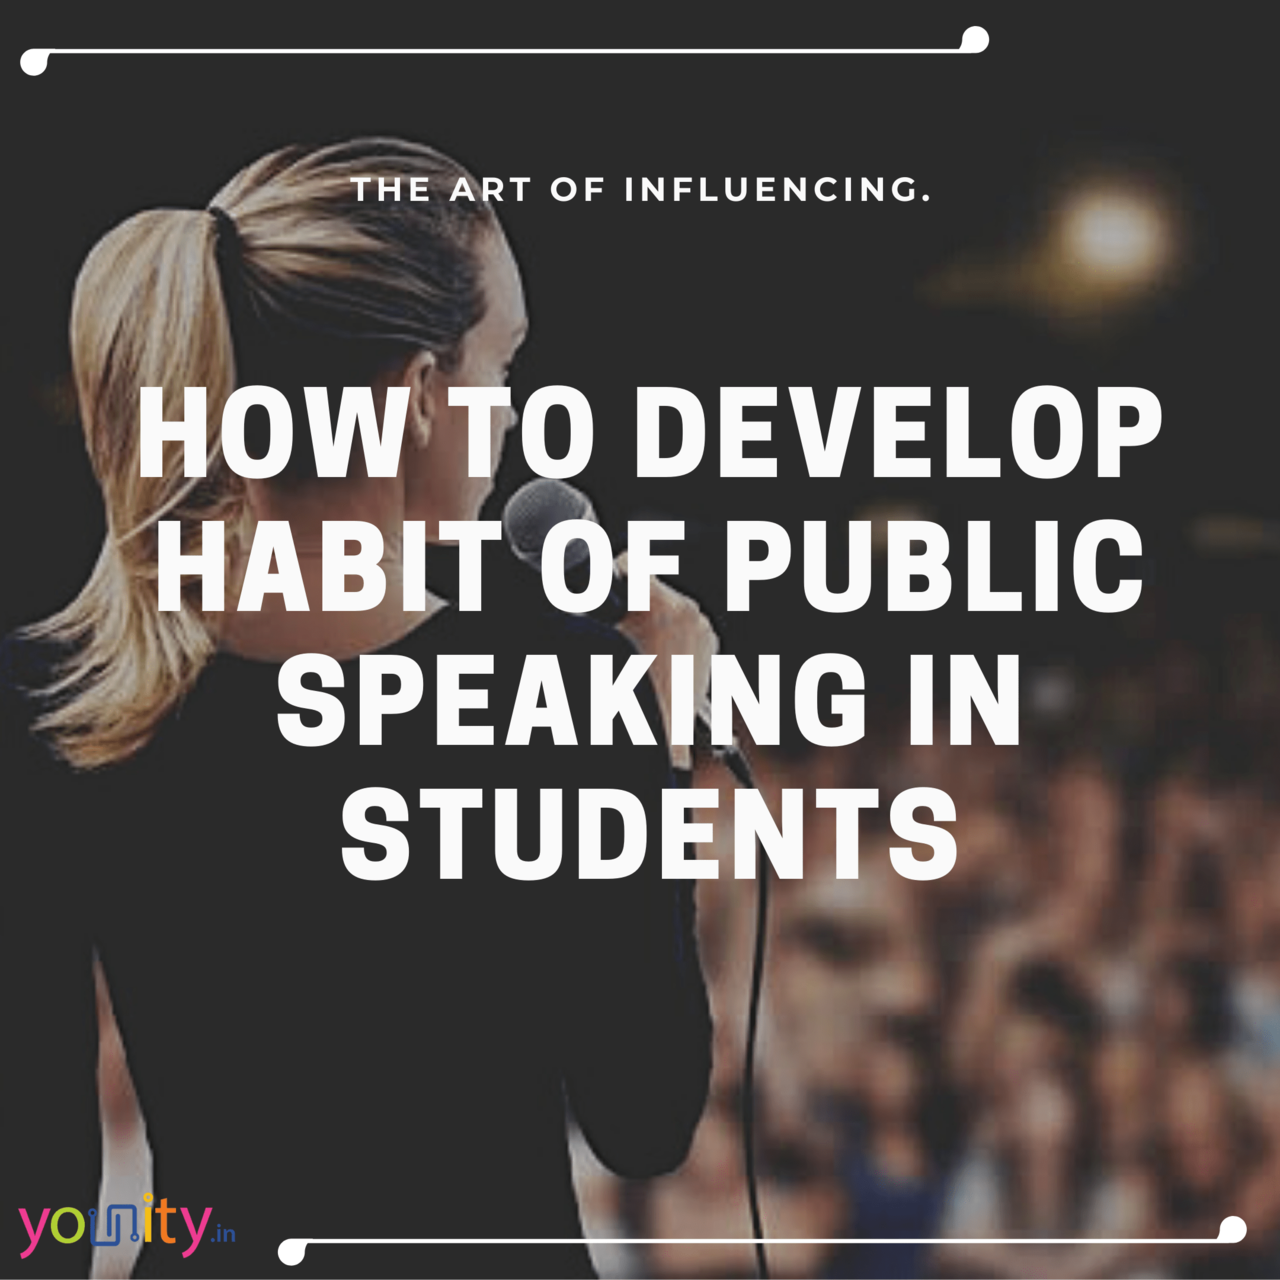 article and publicspeaking image